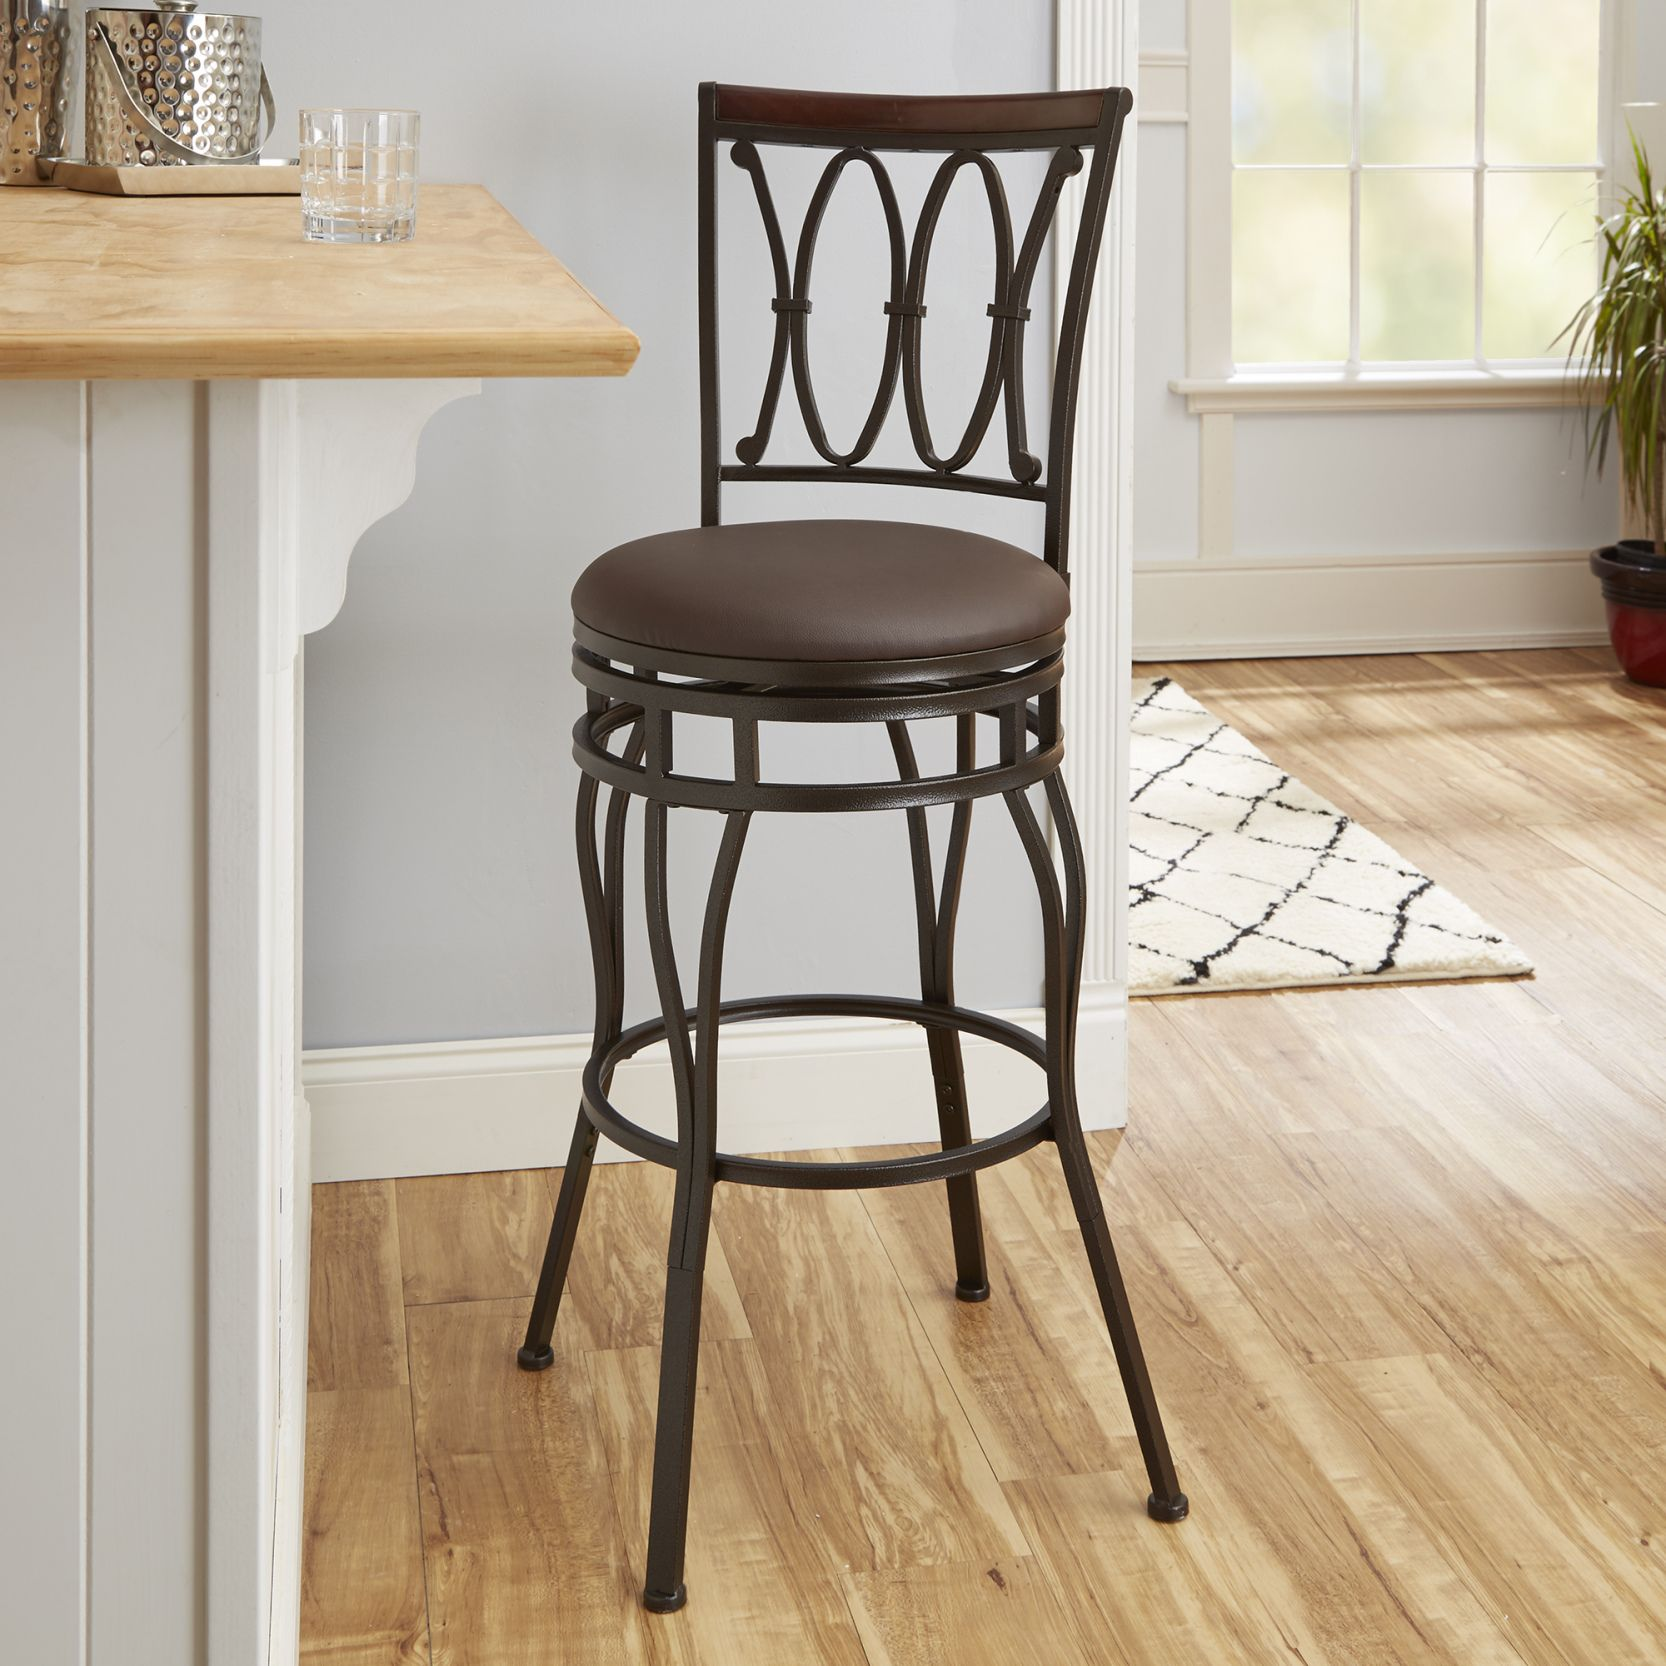 55 34 36 inch bar stools contemporary modern furniture check more at http